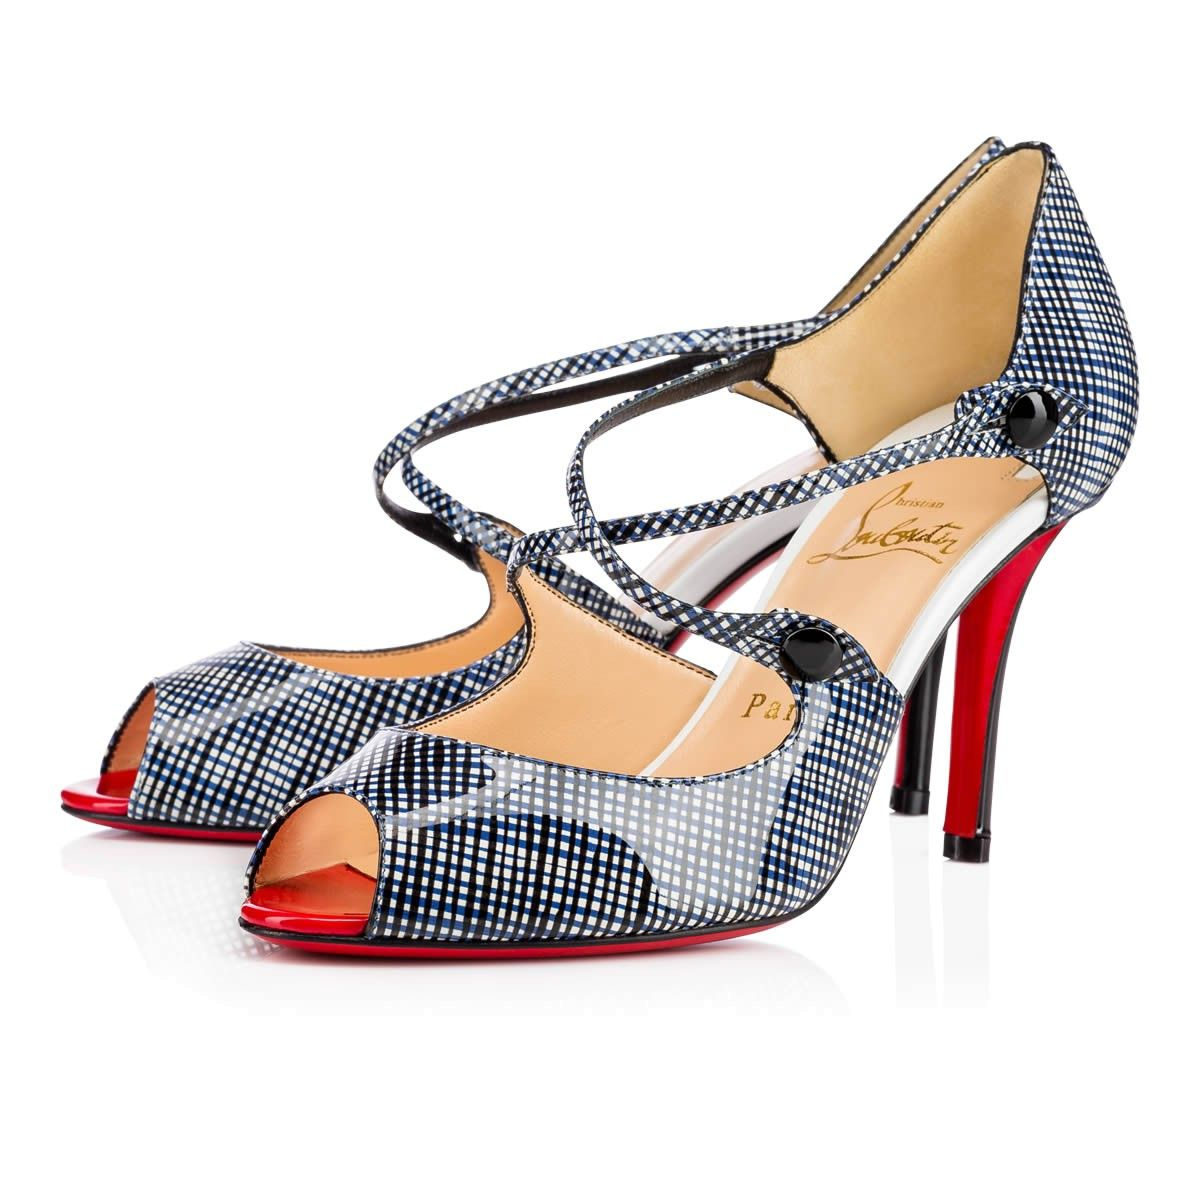 buy popular 5ff63 7a890 CHRISTIAN LOUBOUTIN Debriditoe 85Mm Navy Patent Filet ...